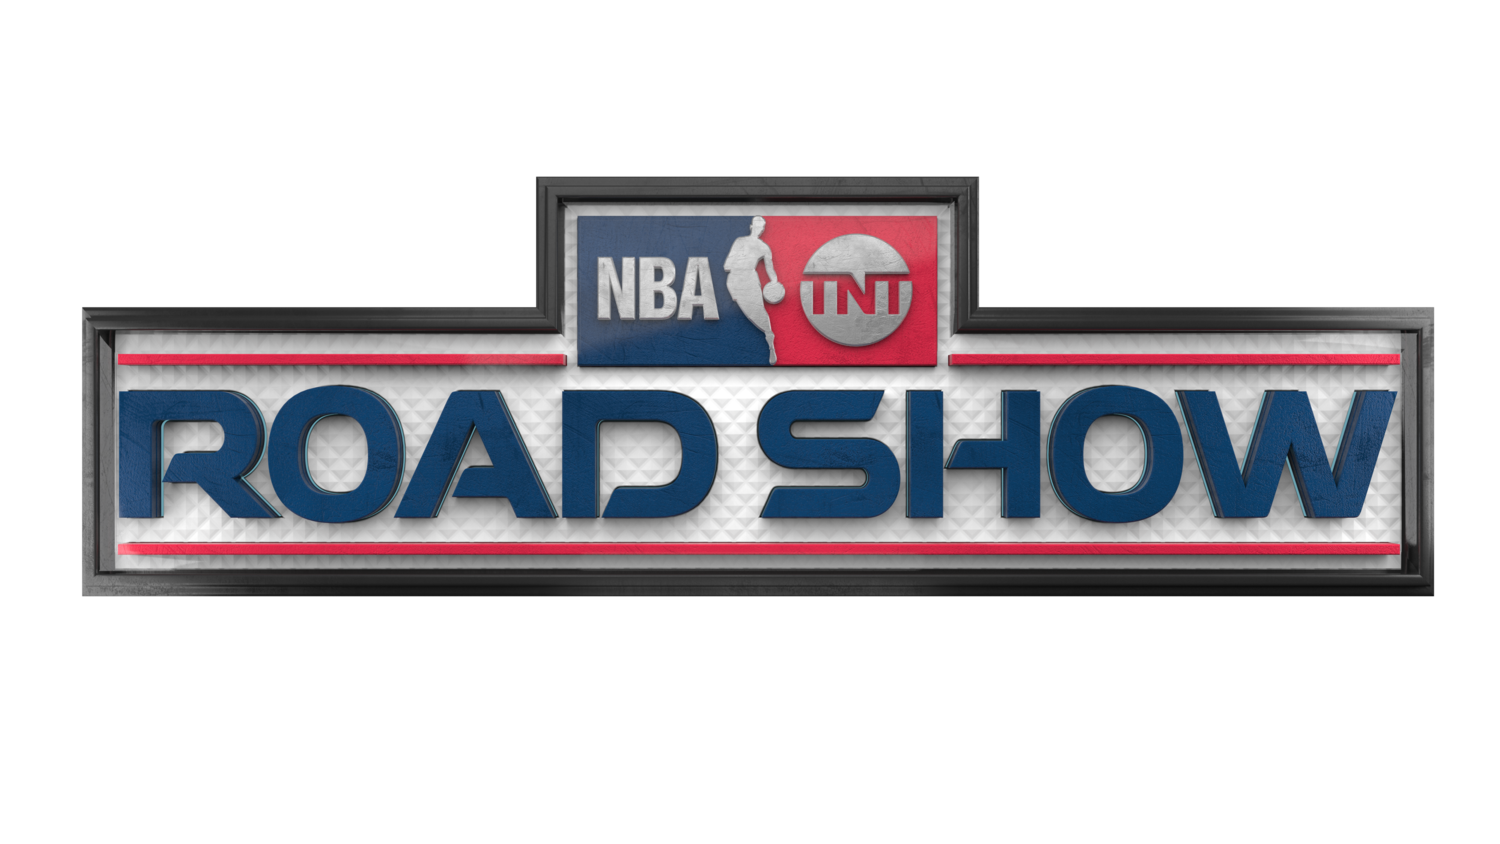 NBA on TNT Road Show